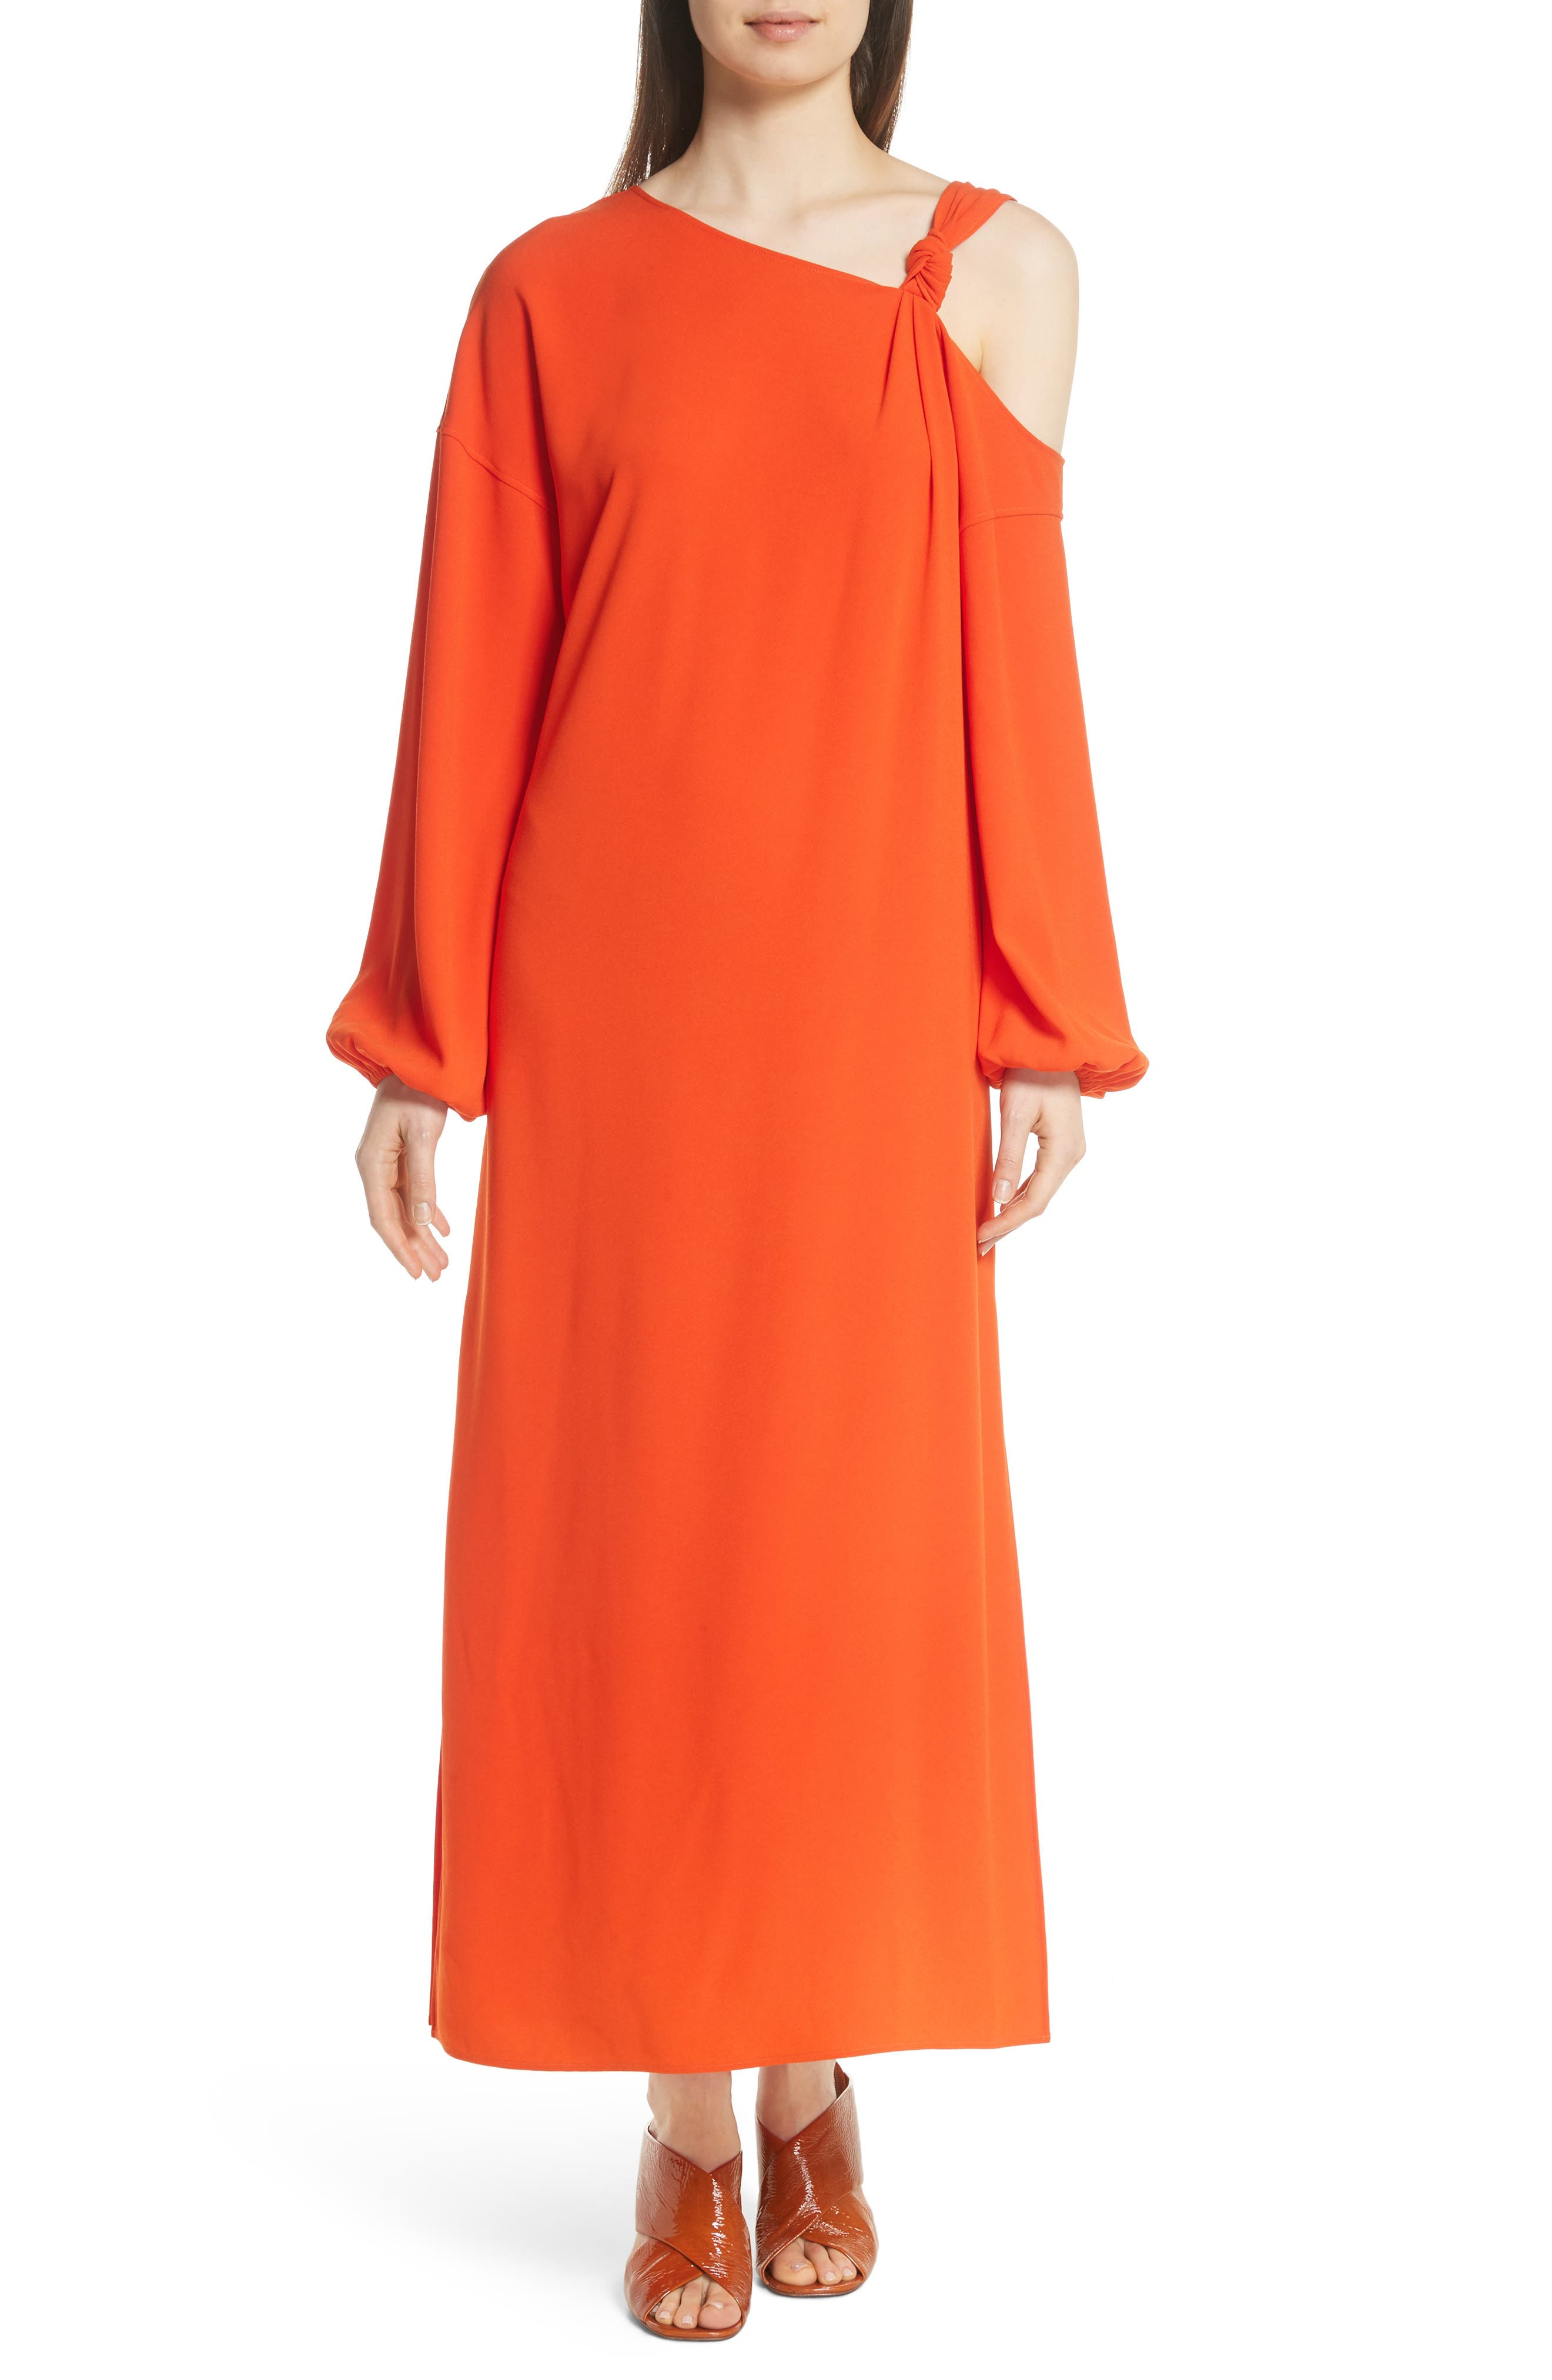 Shontae One-Shoulder Maxi Dress,                         Main,                         color, Tangerine